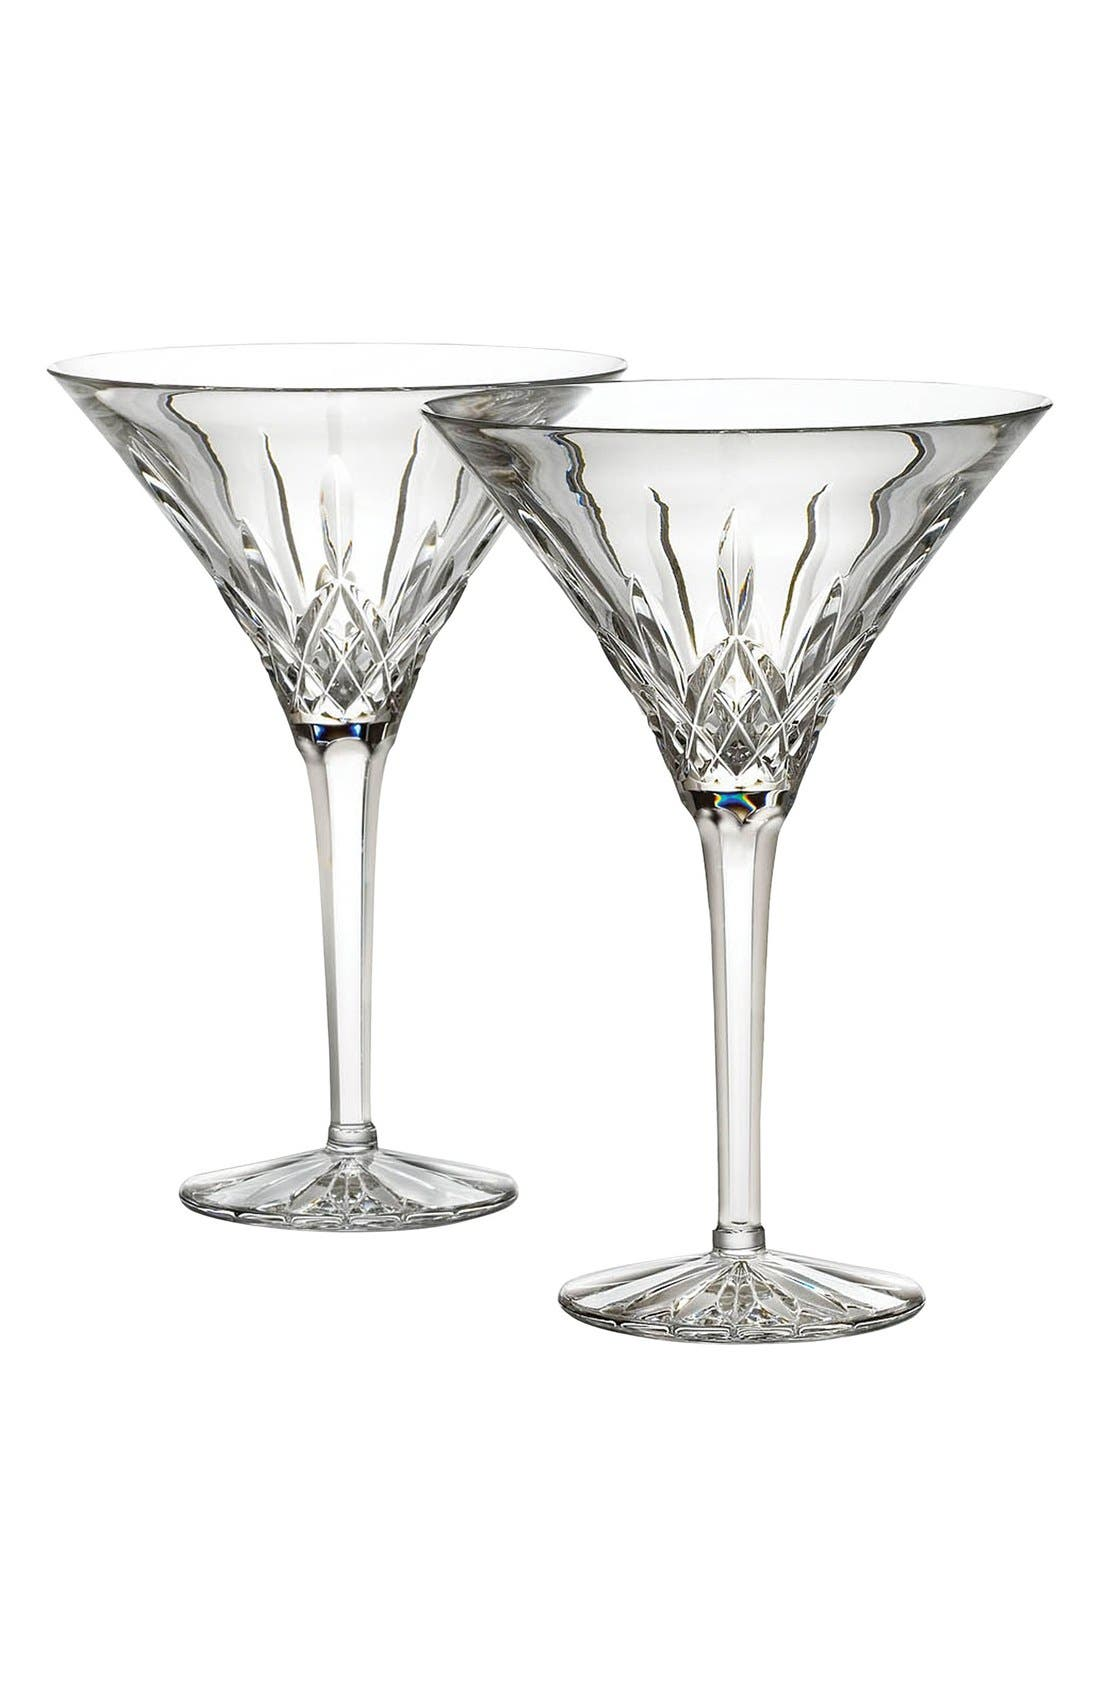 Main Image - Waterford 'Lismore' Lead Crystal Martini Glasses (Set of 2)